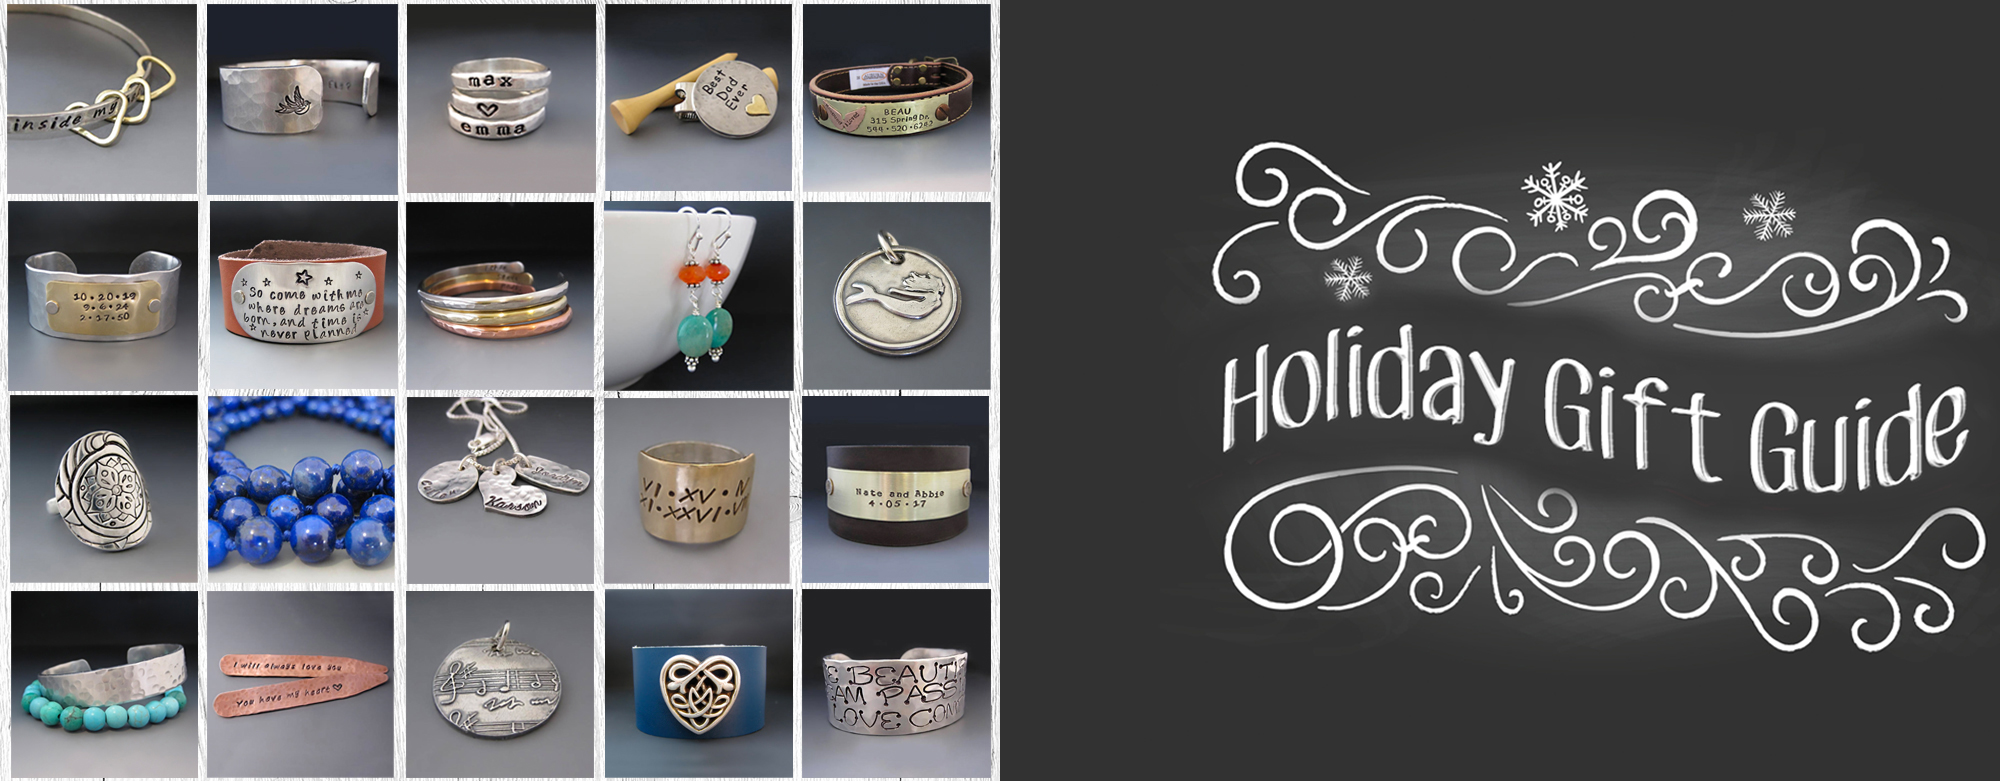 String of Jewels Holiday Gift Guide Banner